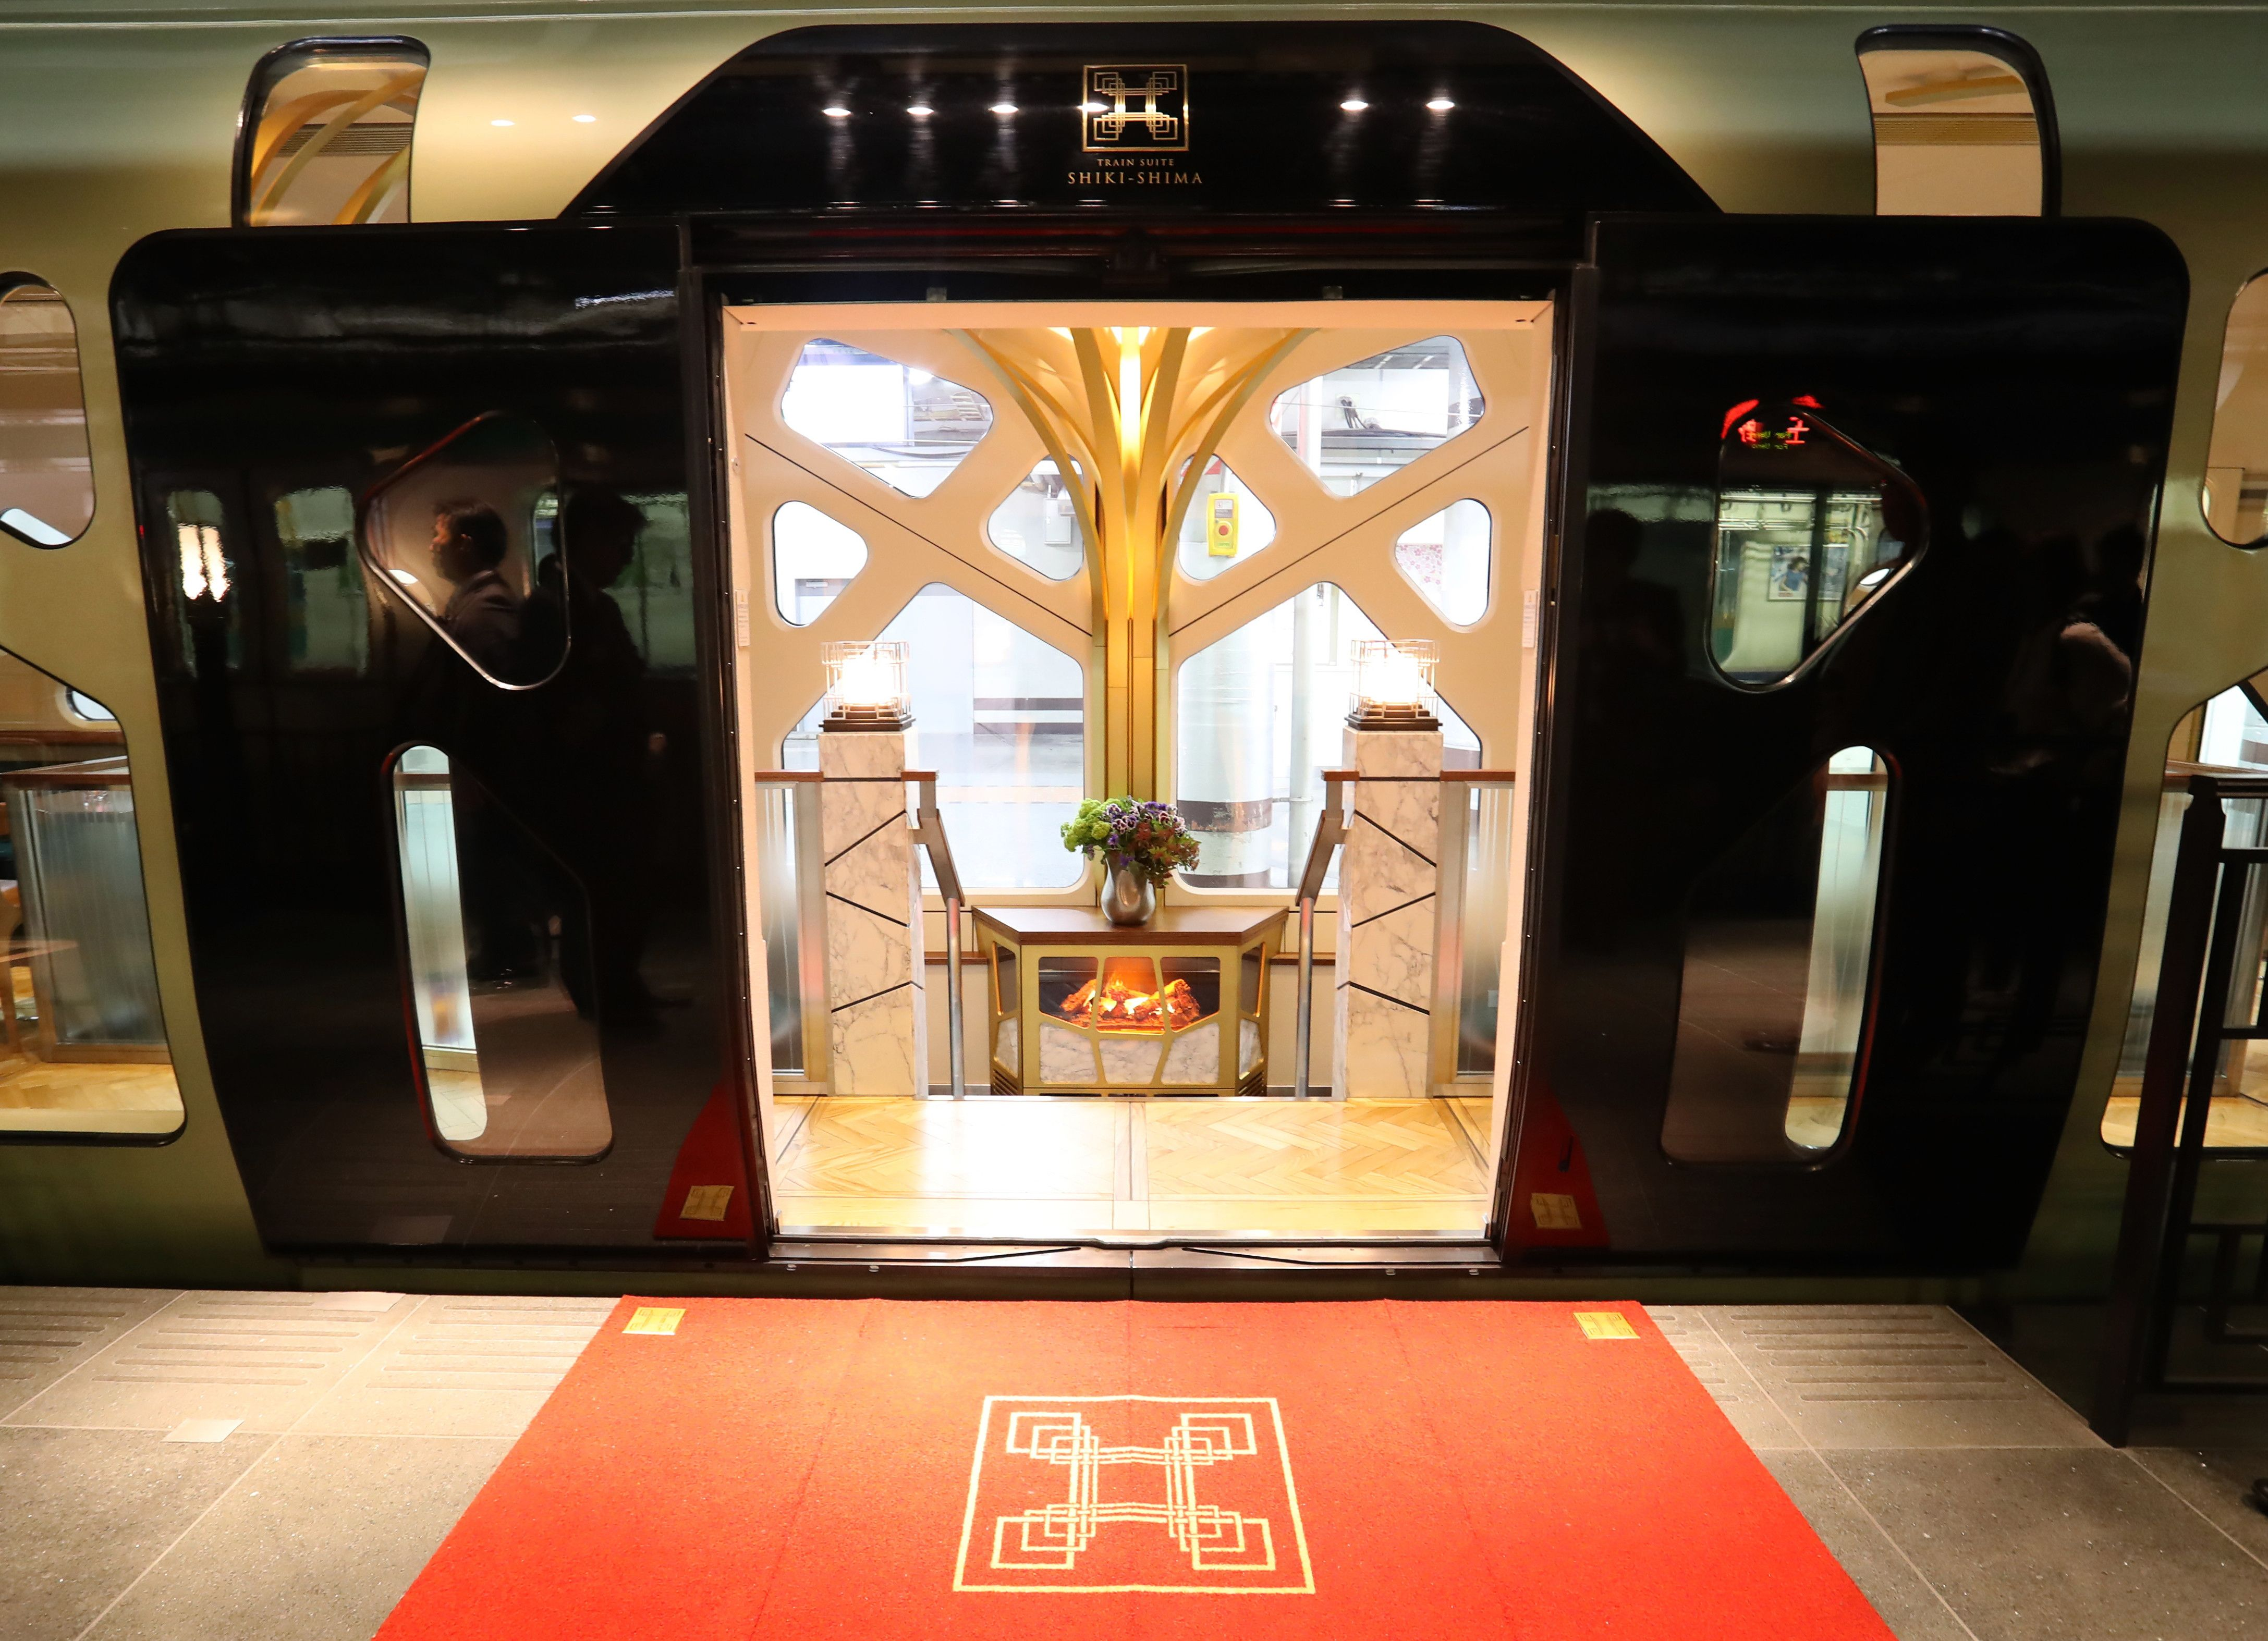 Entrance of the Train Suite Shiki-Shima, operated by East Japan Railway, in Tokyo.